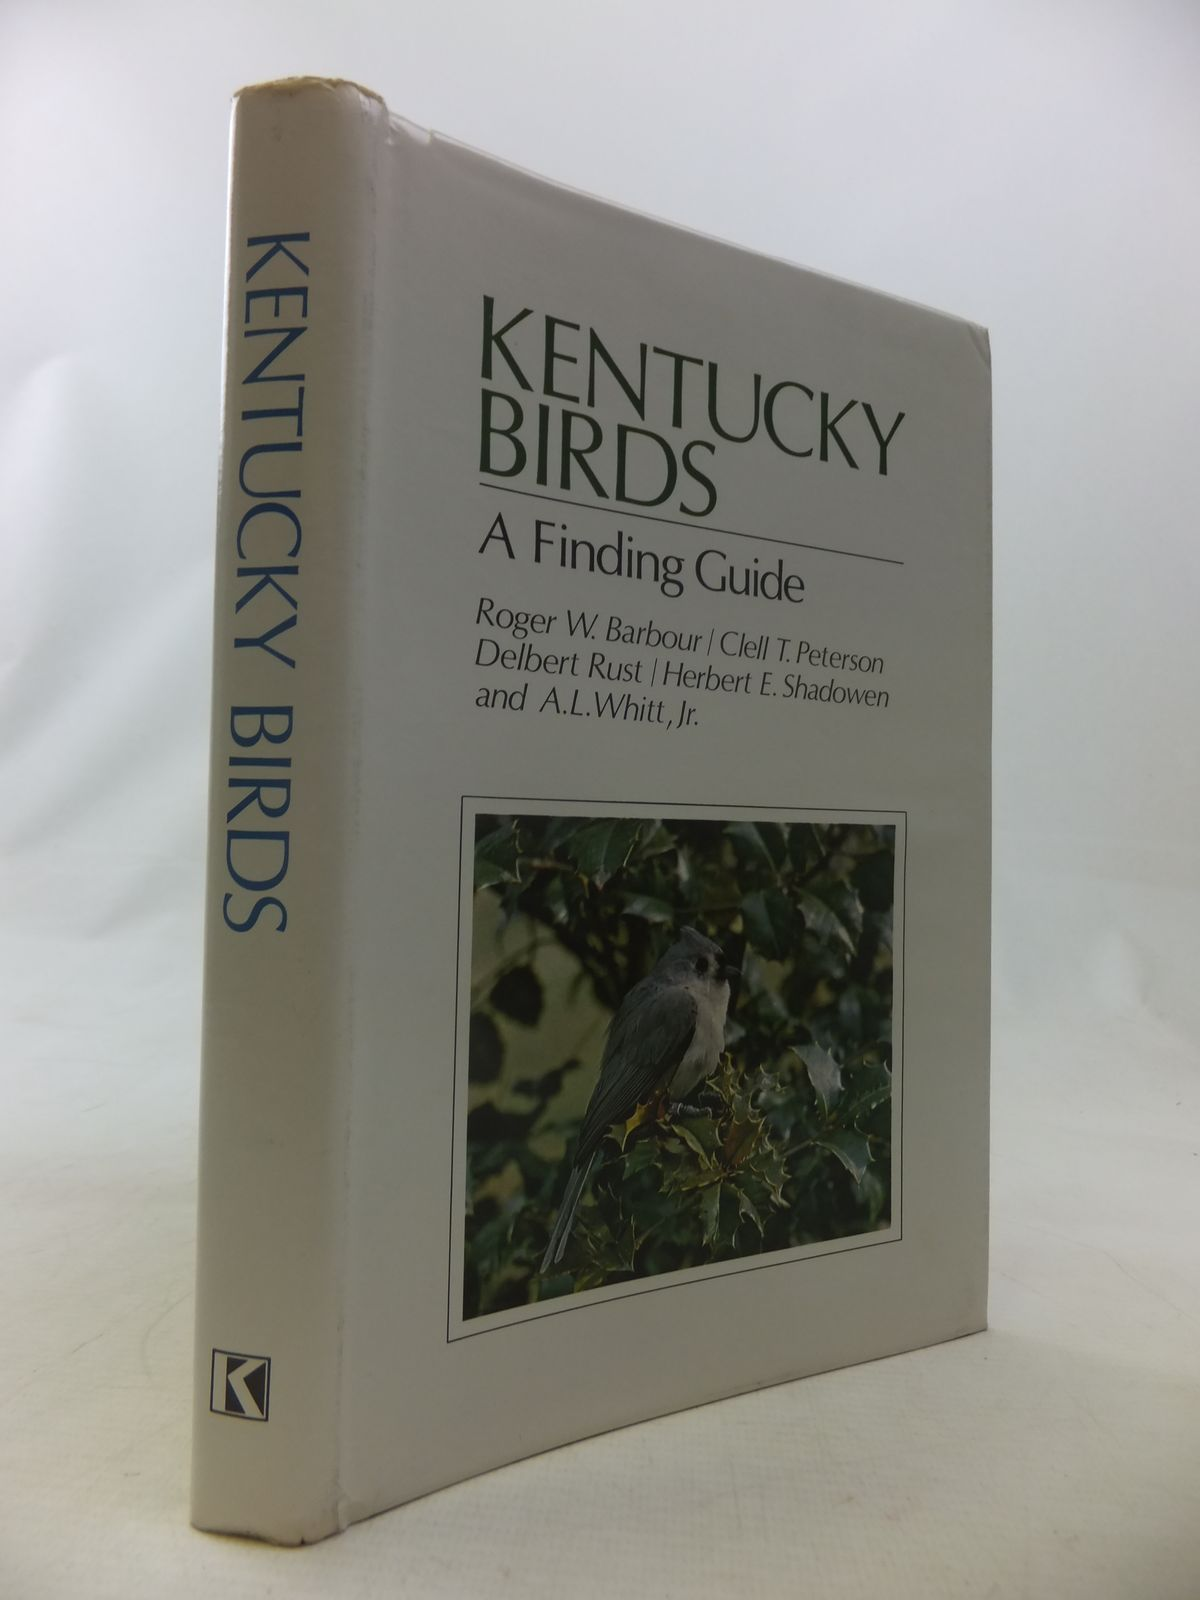 Photo of KENTUCKY BIRDS A FINDING GUIDE written by Barbour, Roger W.<br />Peterson, Clell T.<br />Rust, Delbert<br />Shadowden, Herbert E.<br />Whitt, A.L. published by University Press of Kentucky (STOCK CODE: 1811083)  for sale by Stella & Rose's Books